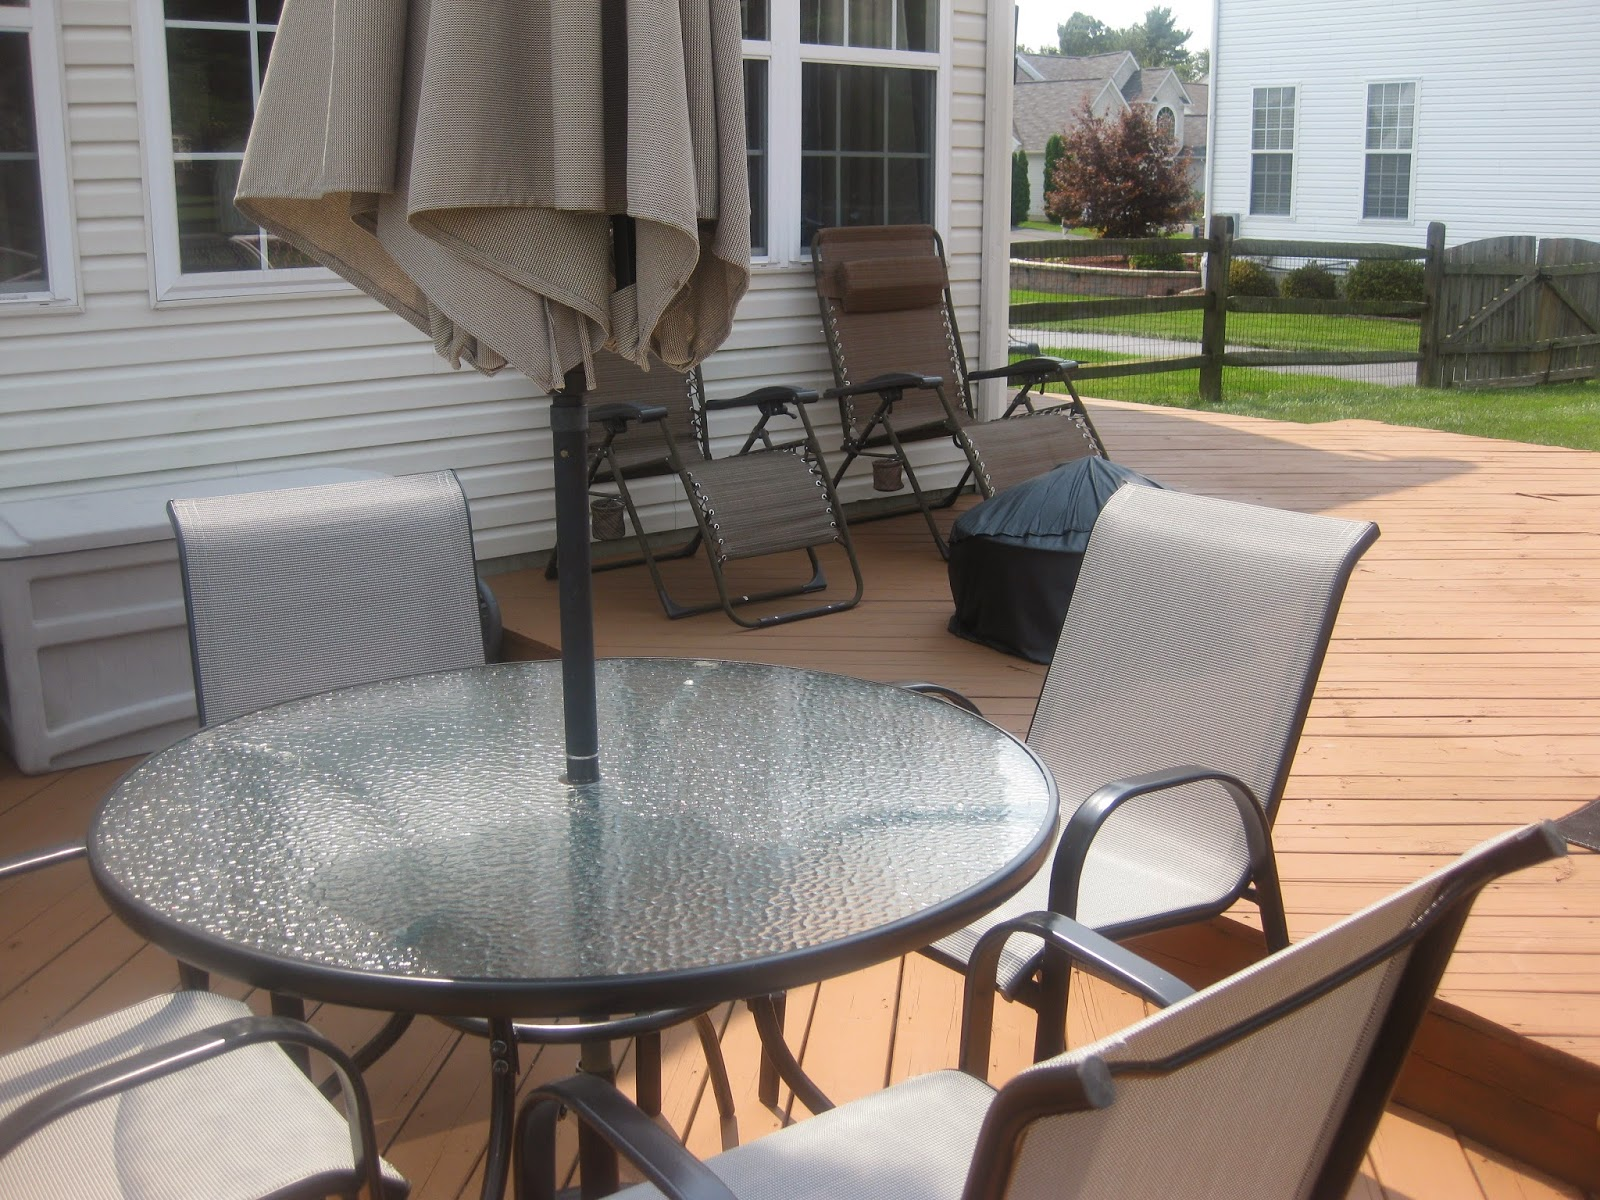 Before image of deck without decor